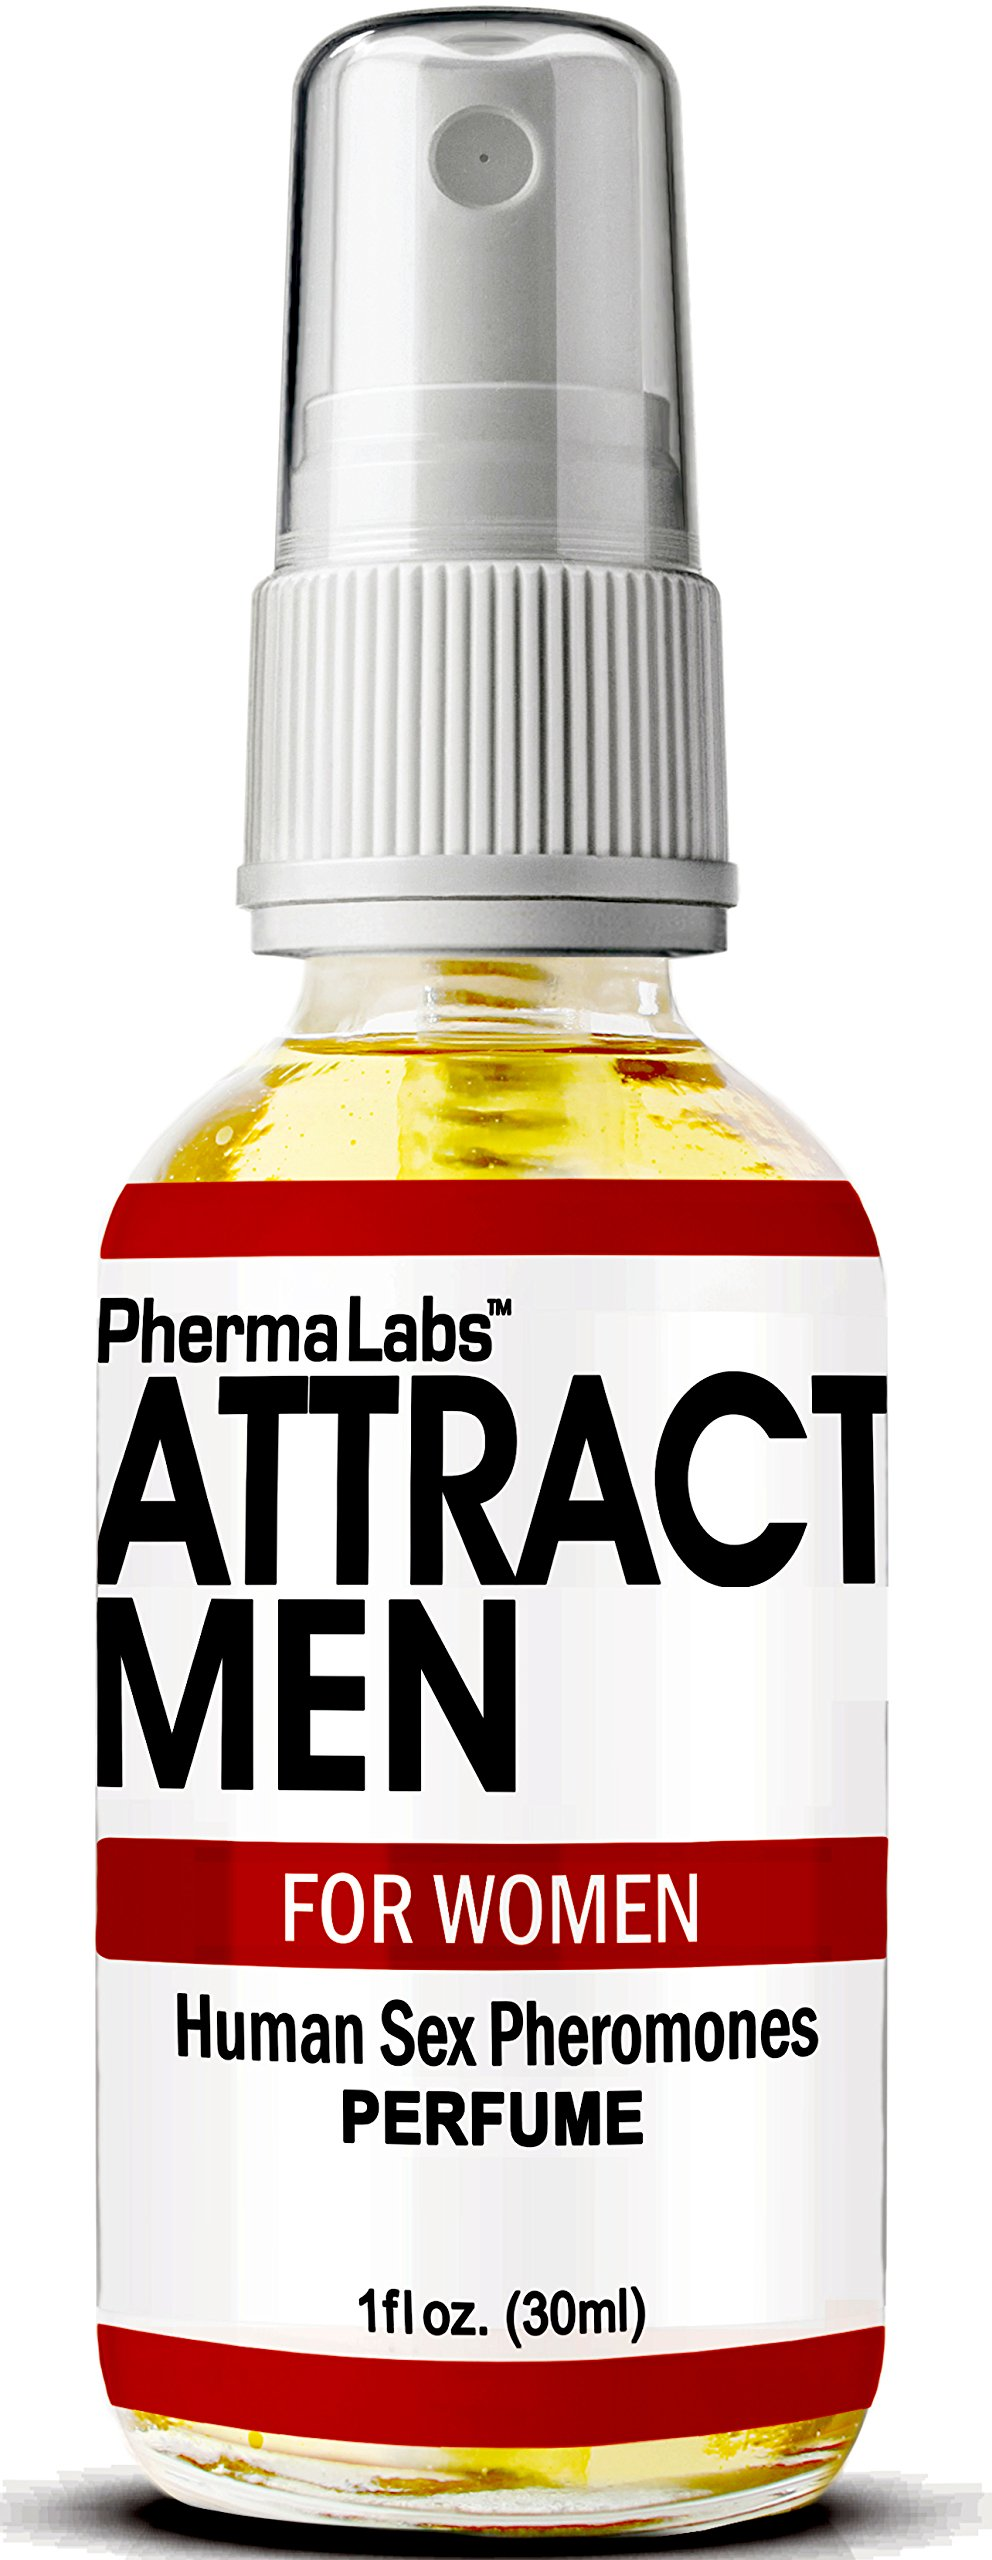 PhermaLabs Pheromones Perfume For Women- 1.0 oz- Attract Men Instantly- Highest Concentration Of